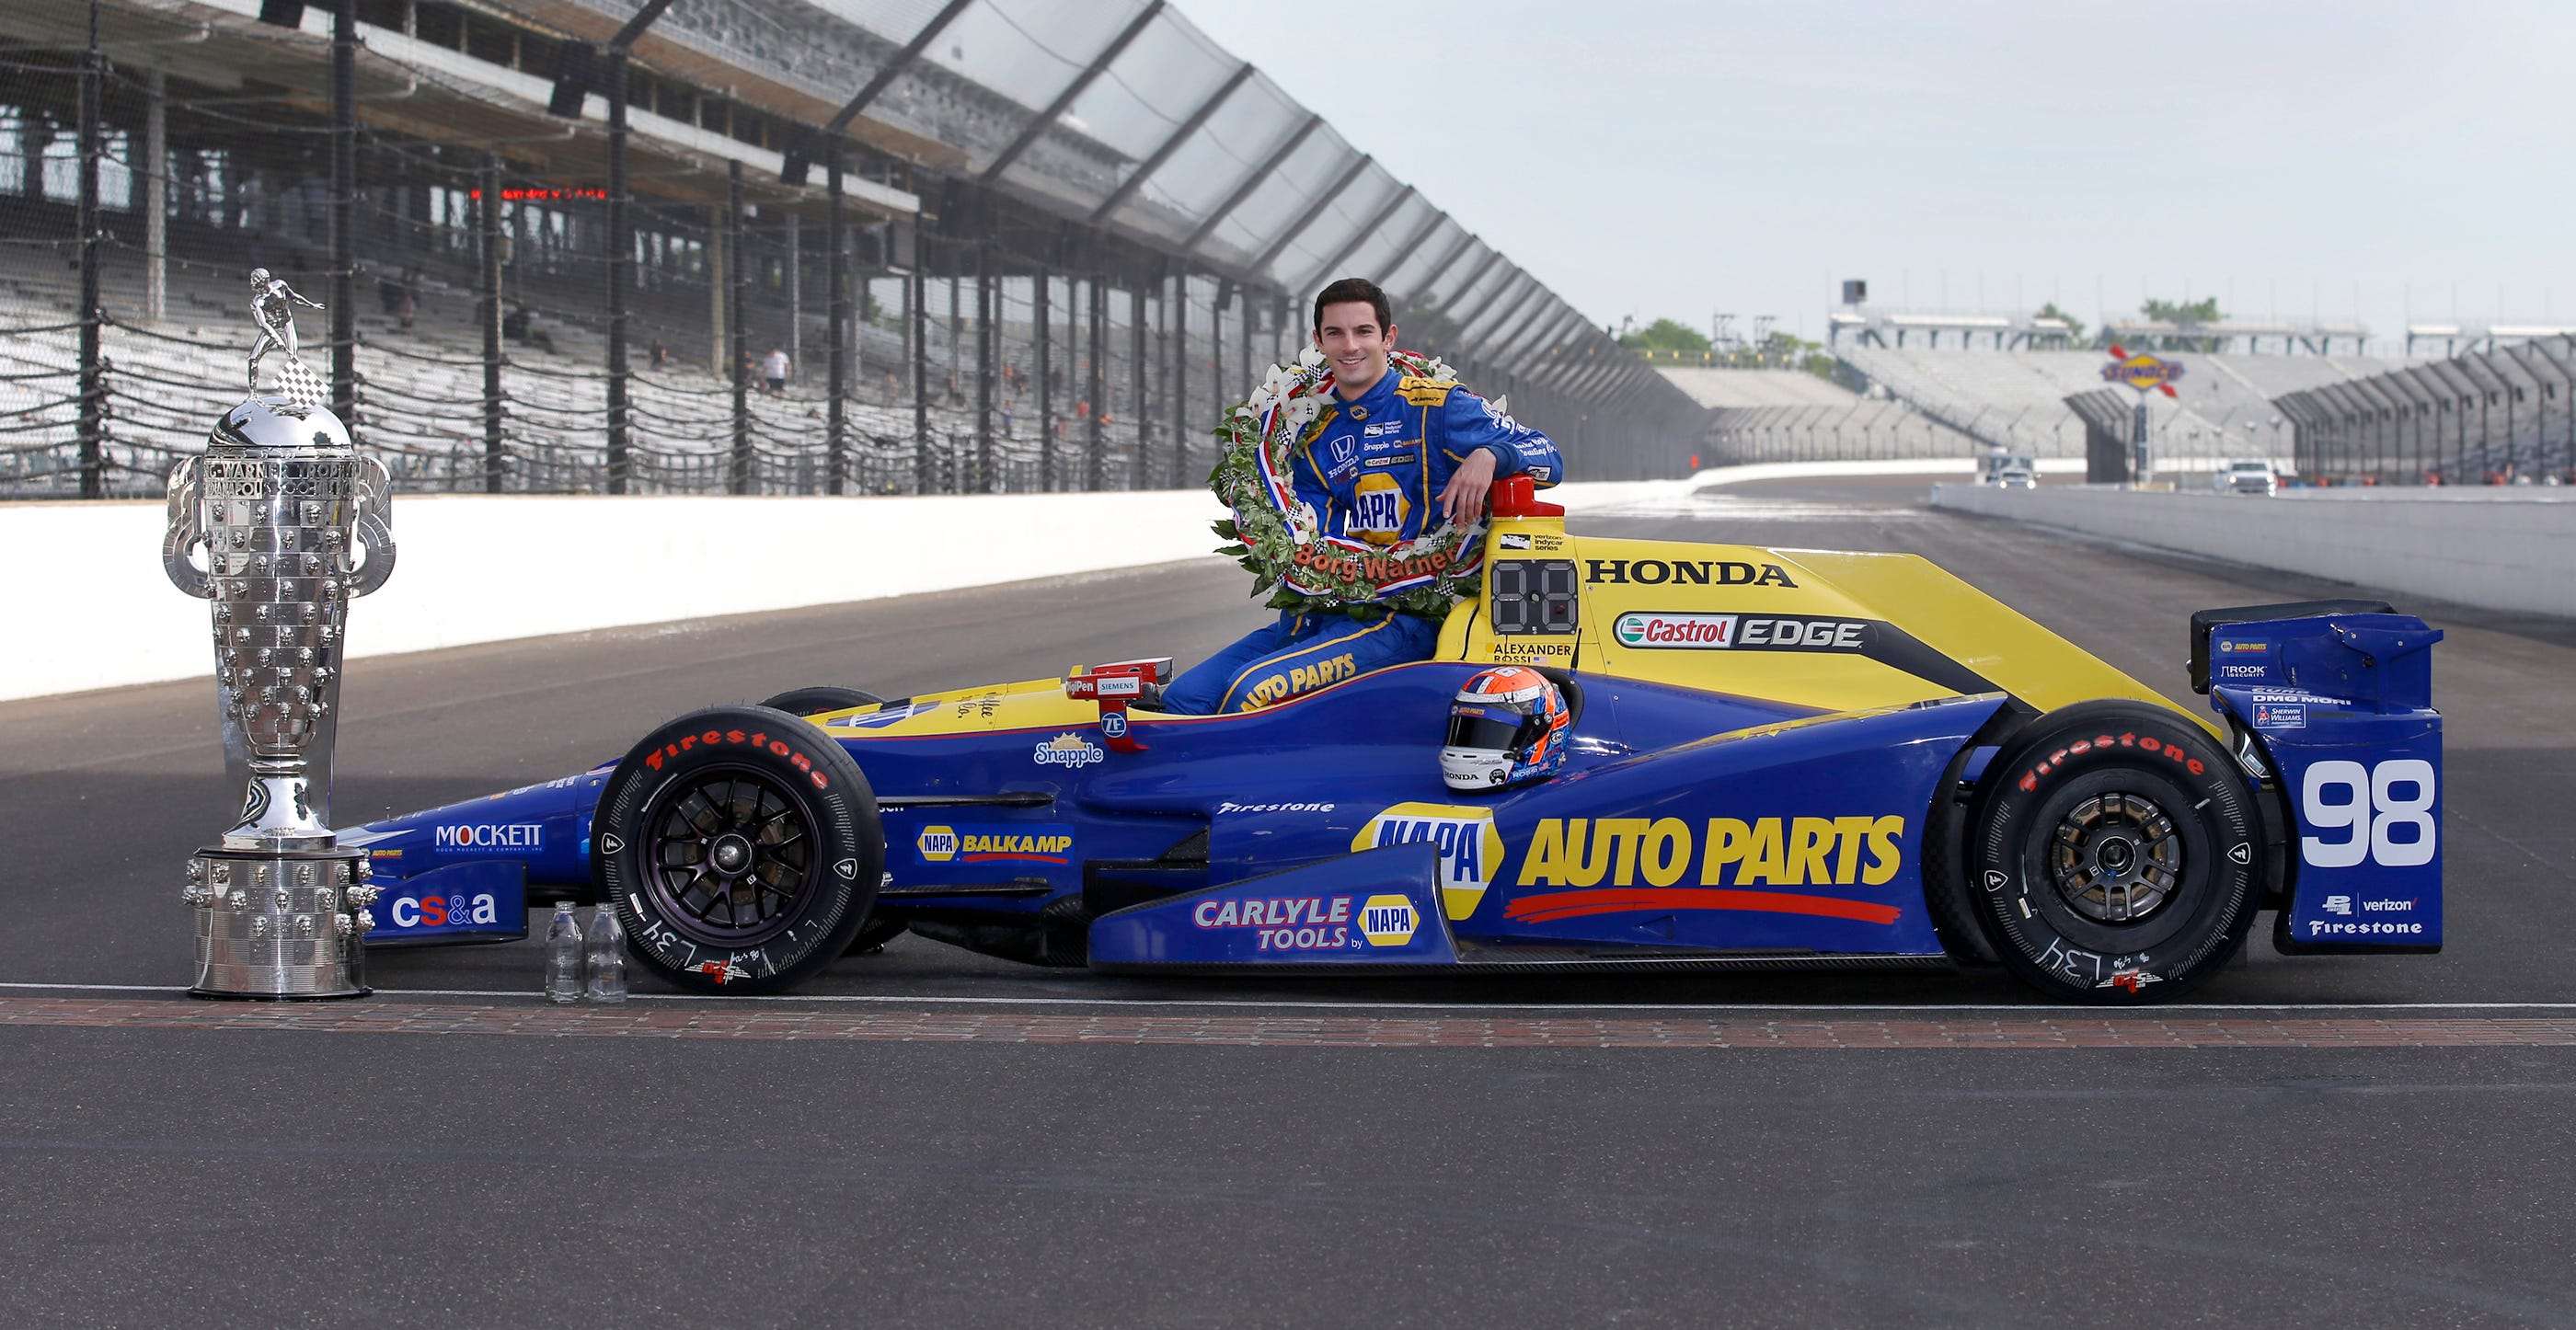 636002273297103995-02-Indy500-Rossi.jpg